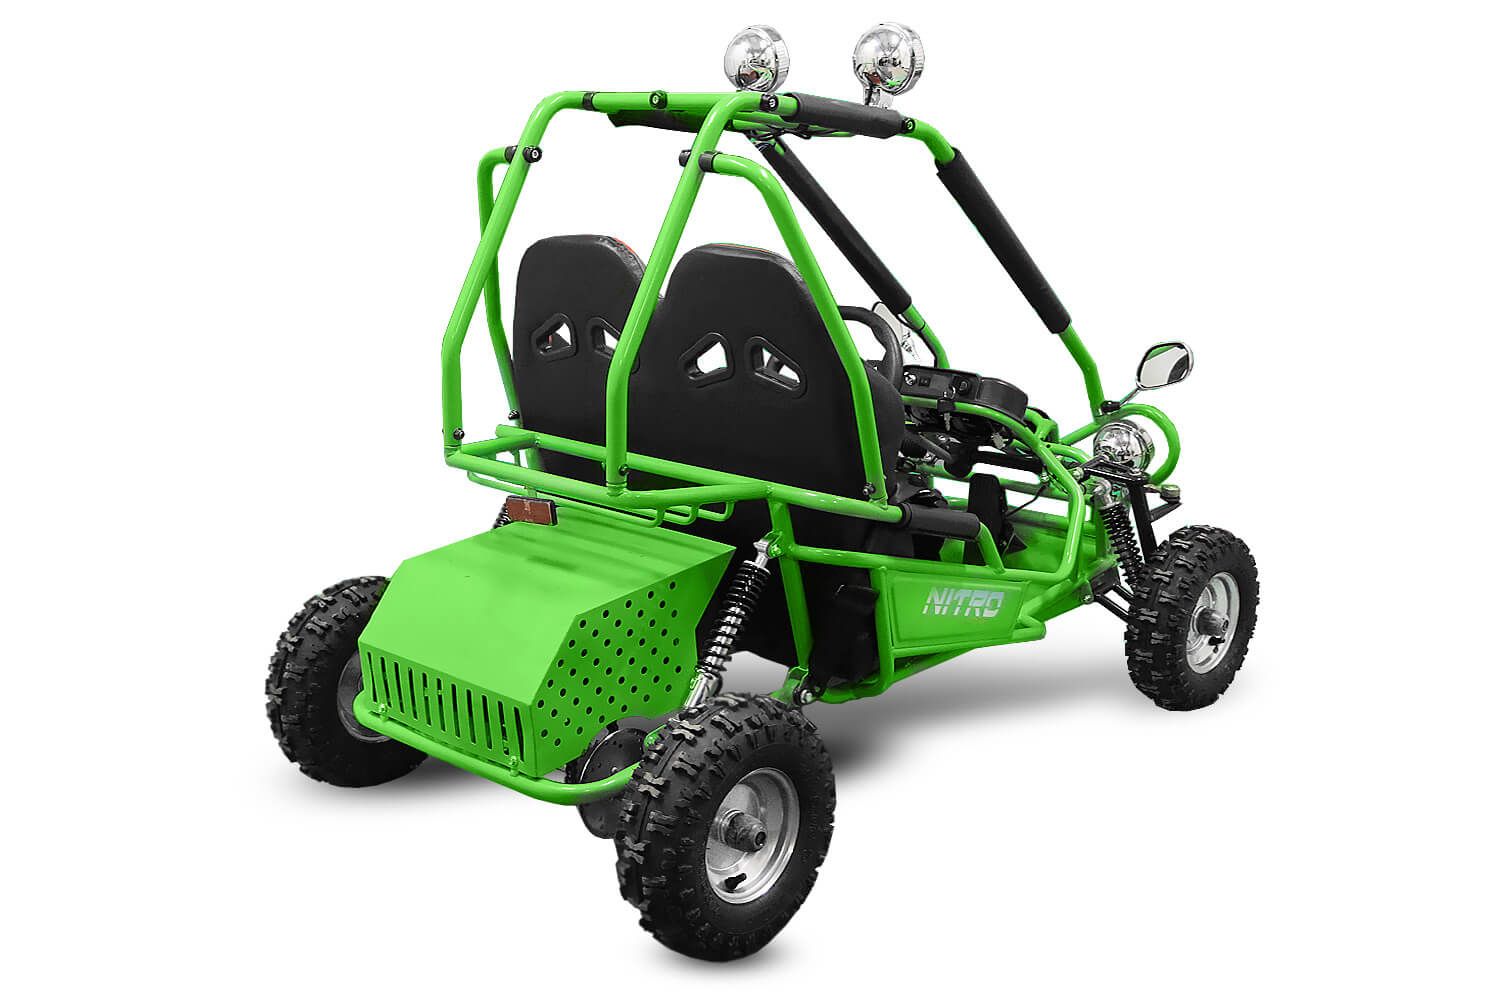 Buggy 450W 36V - Electric Buggy - 3x12V 12Ah Batteries from